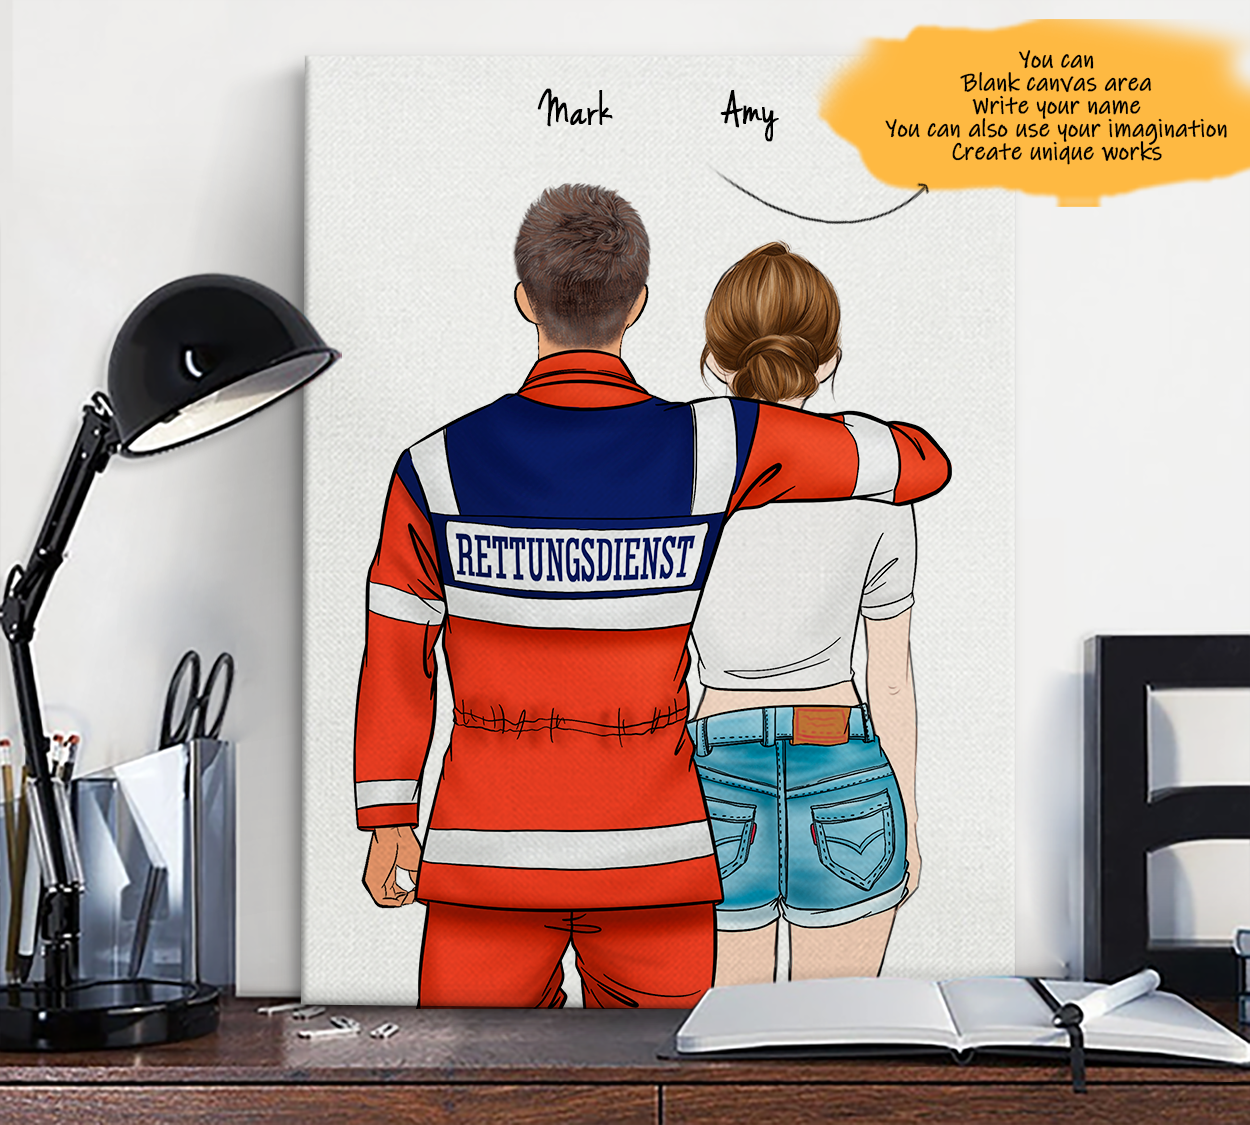 He is My Friend! Hand Draw Custom Canvas-Print Gift AmbulanceDriverGermany-Tan&CowboyGirl